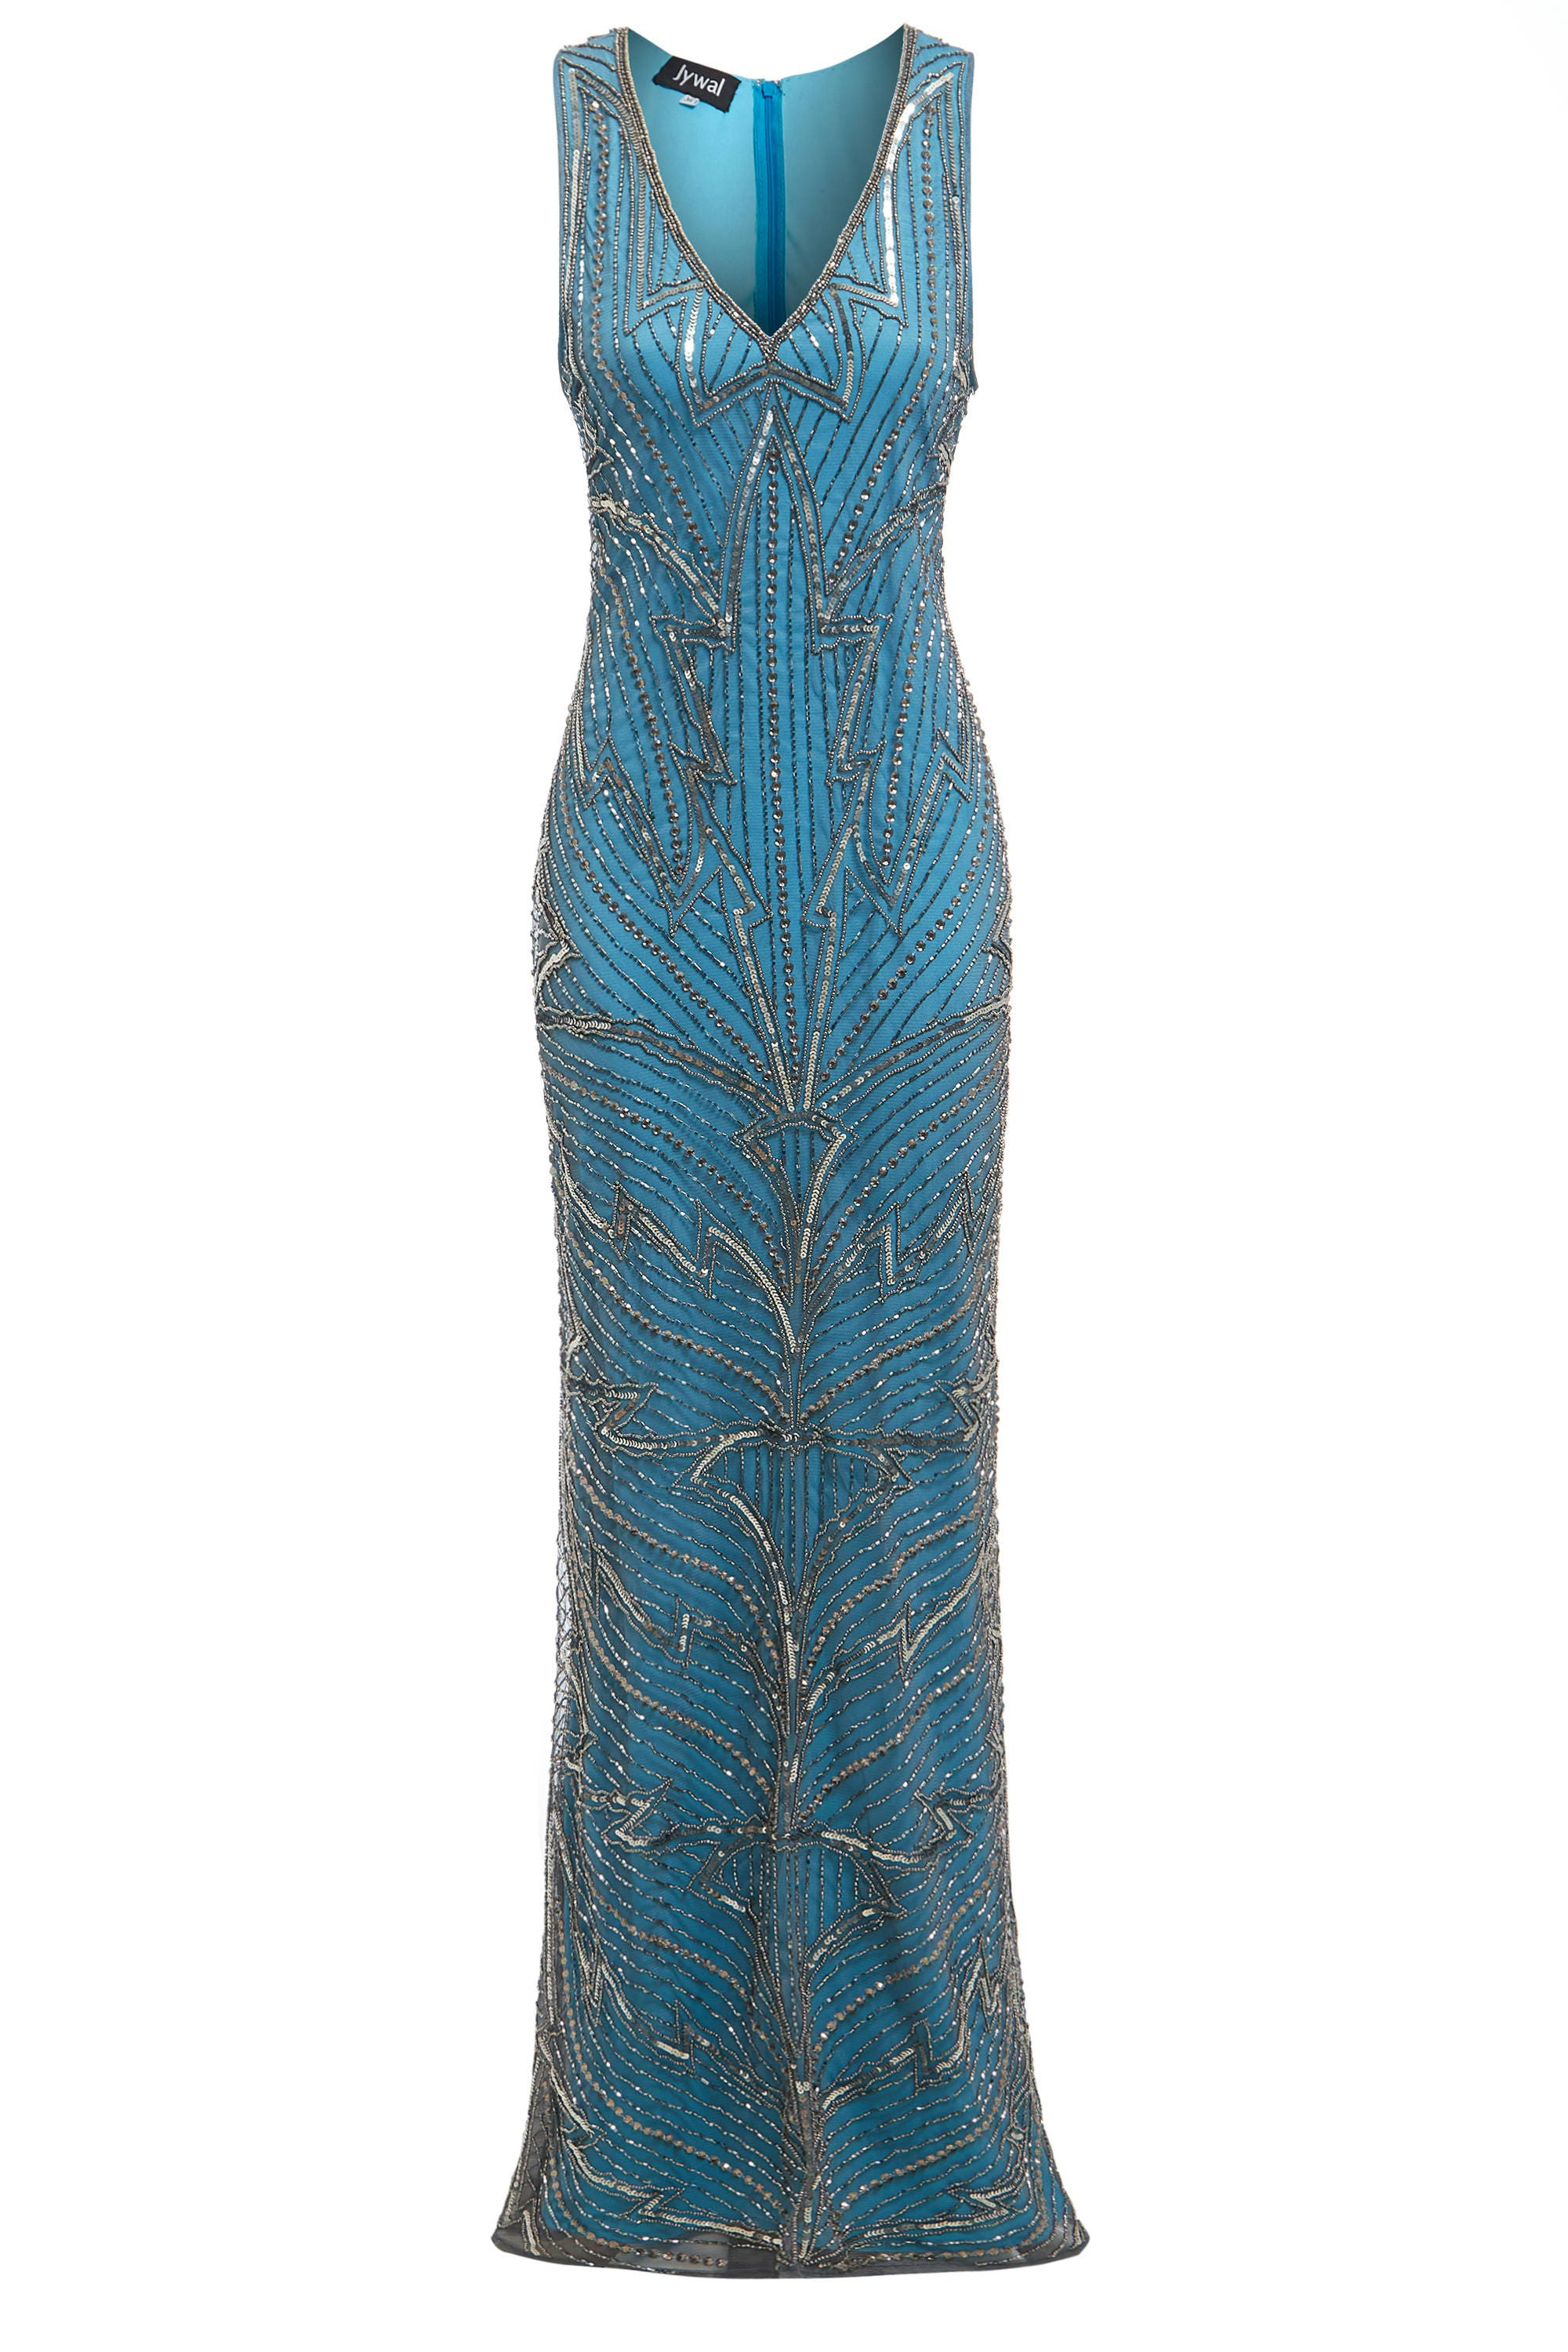 Monica Blue Embellished Flapper Dress 1920s Great Gatsby